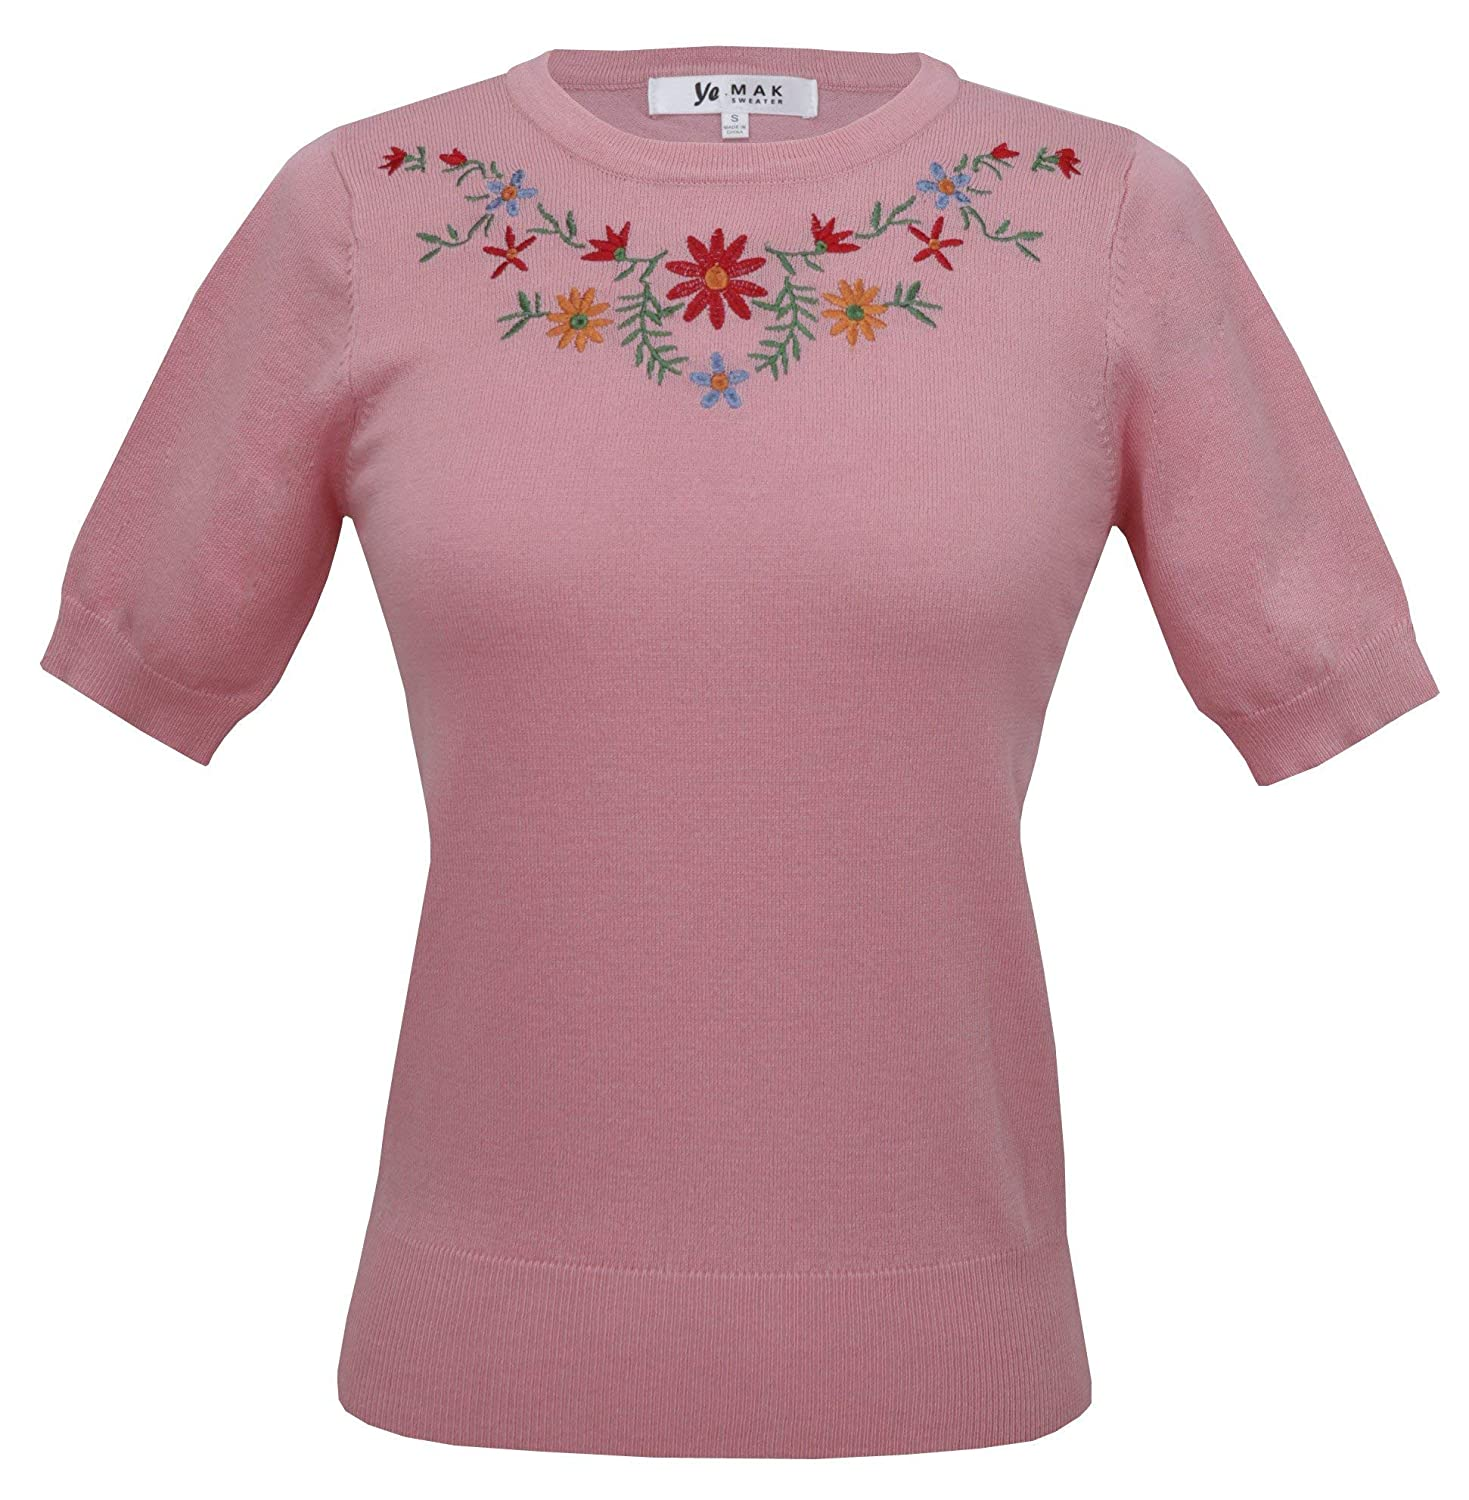 Vintage Sweaters & Cardigans: 1940s, 1950s, 1960s YEMAK Daisy Flower Embroidered Cute Pullover Sweater Vintage Inspired MK3664EMBO(S-L) $21.50 AT vintagedancer.com